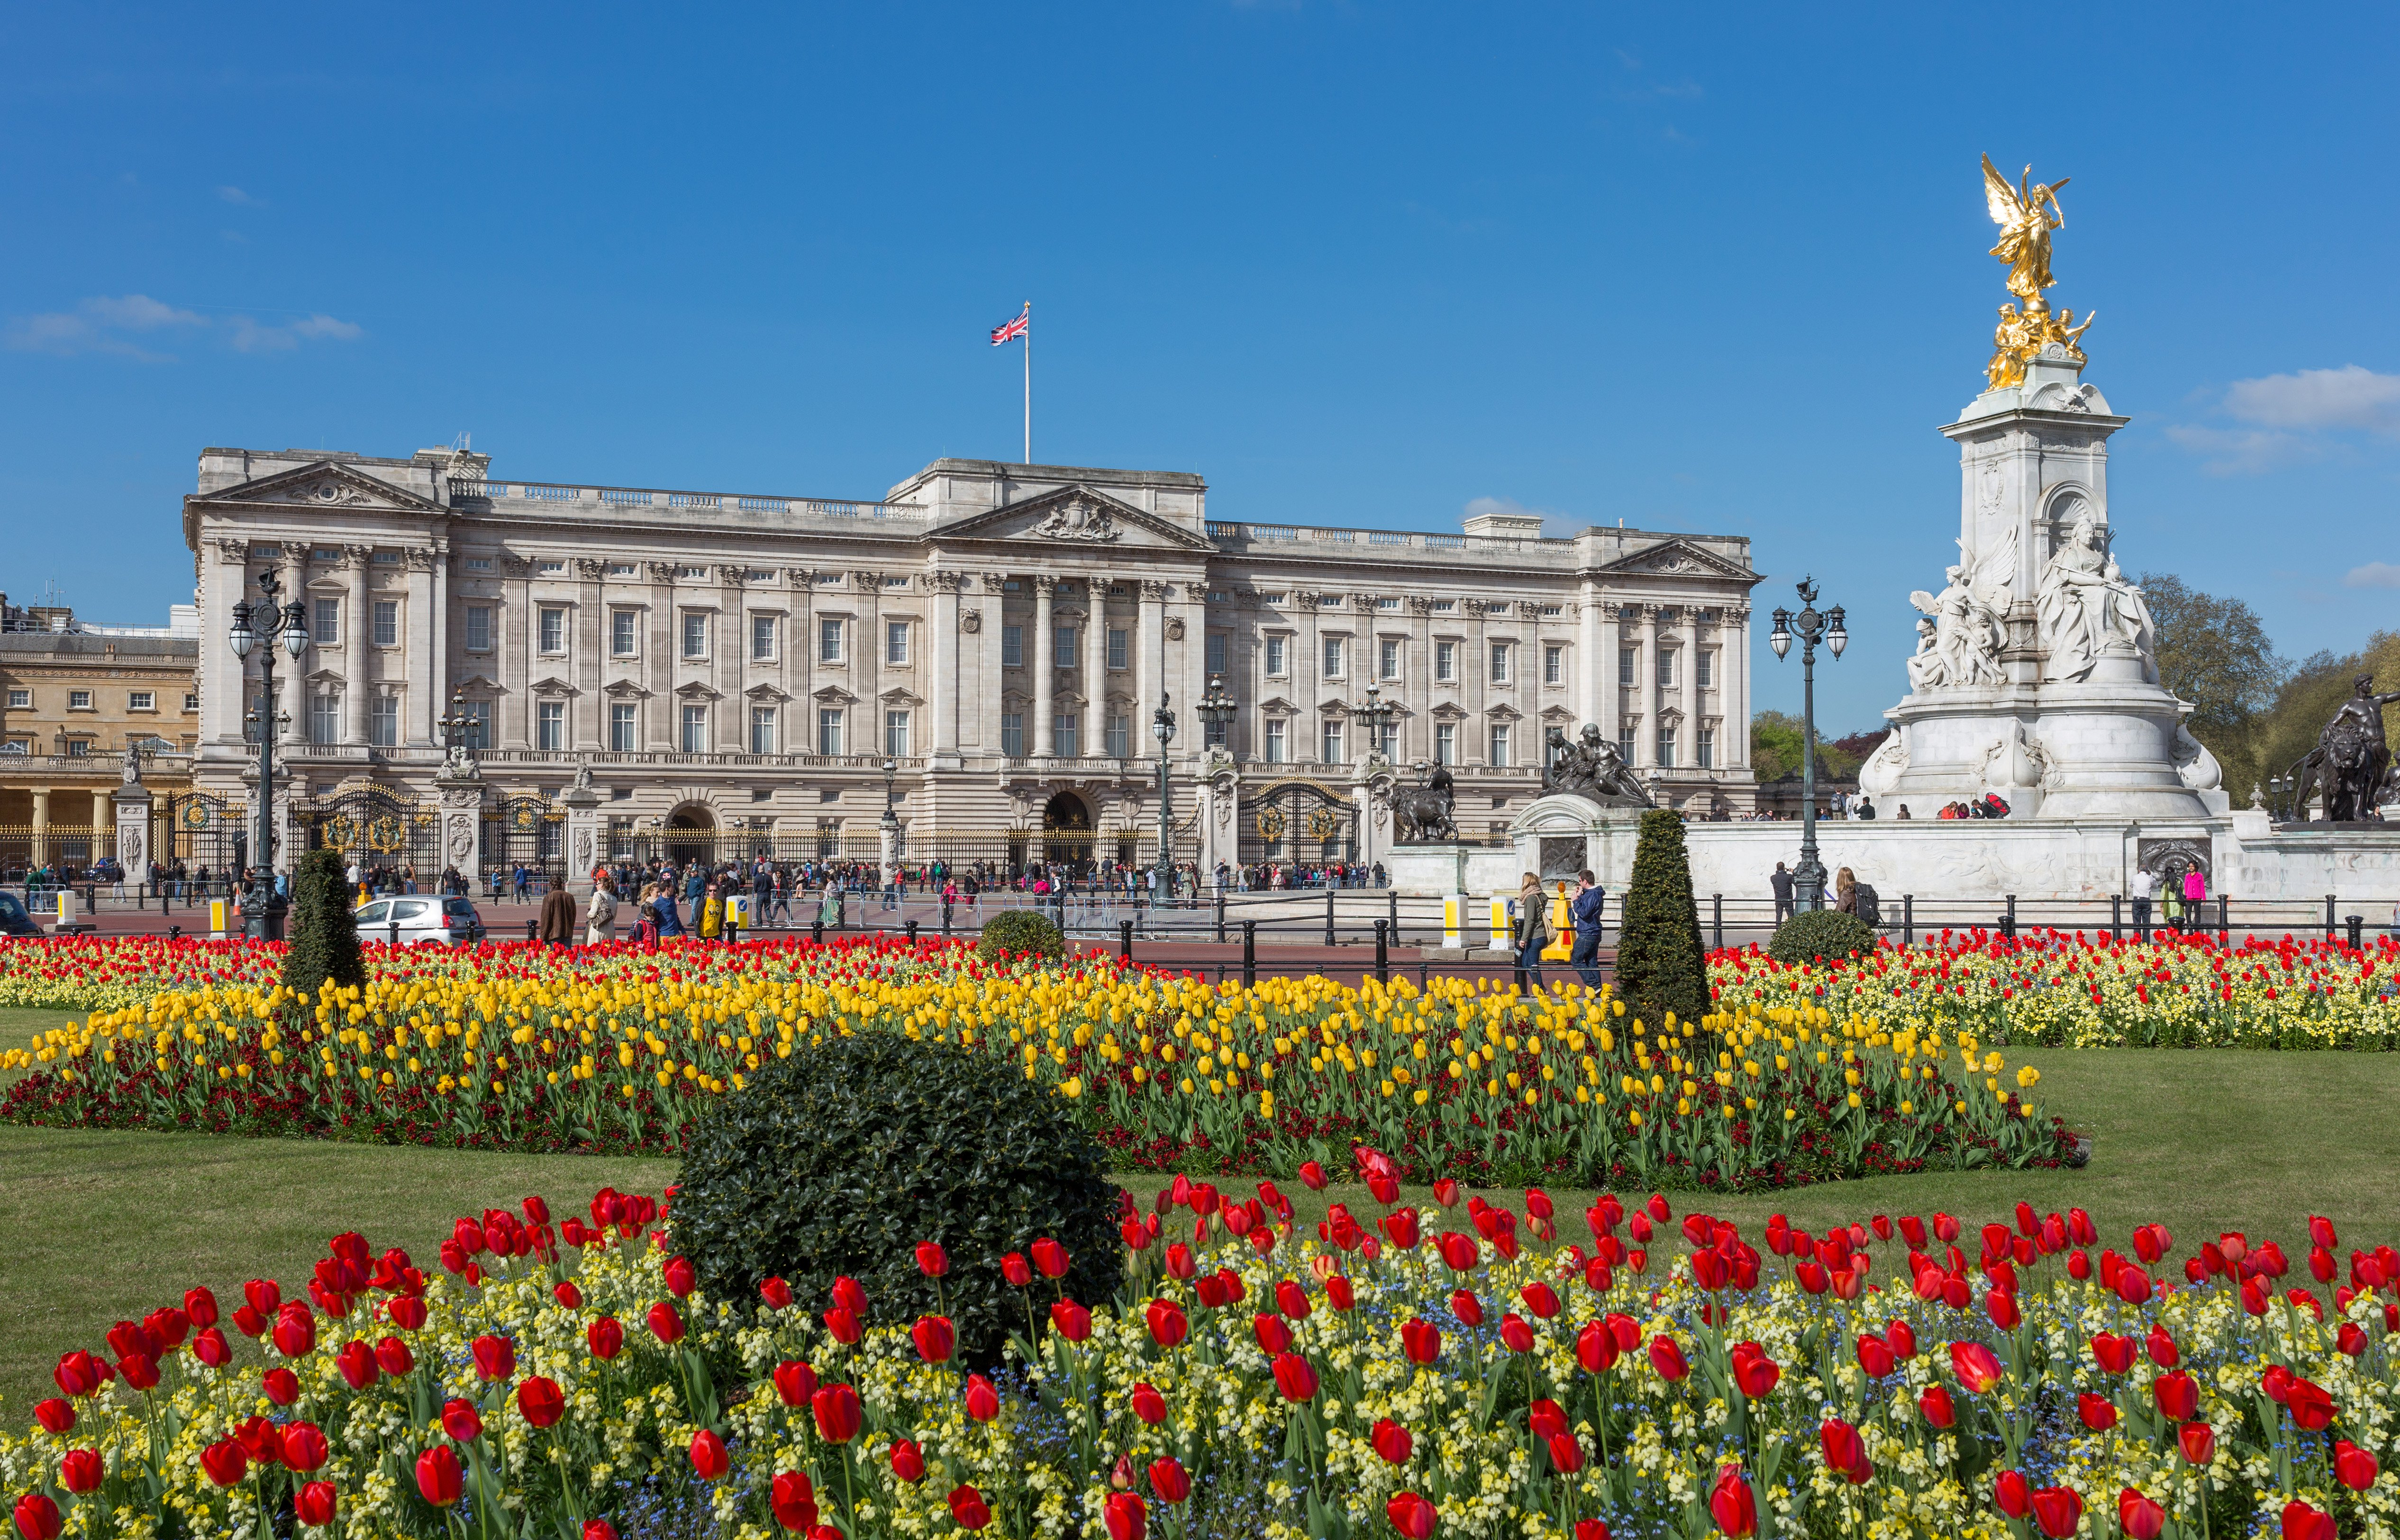 Buckingham_Palace_from_gardens,_London,_UK_-_Diliff[1]